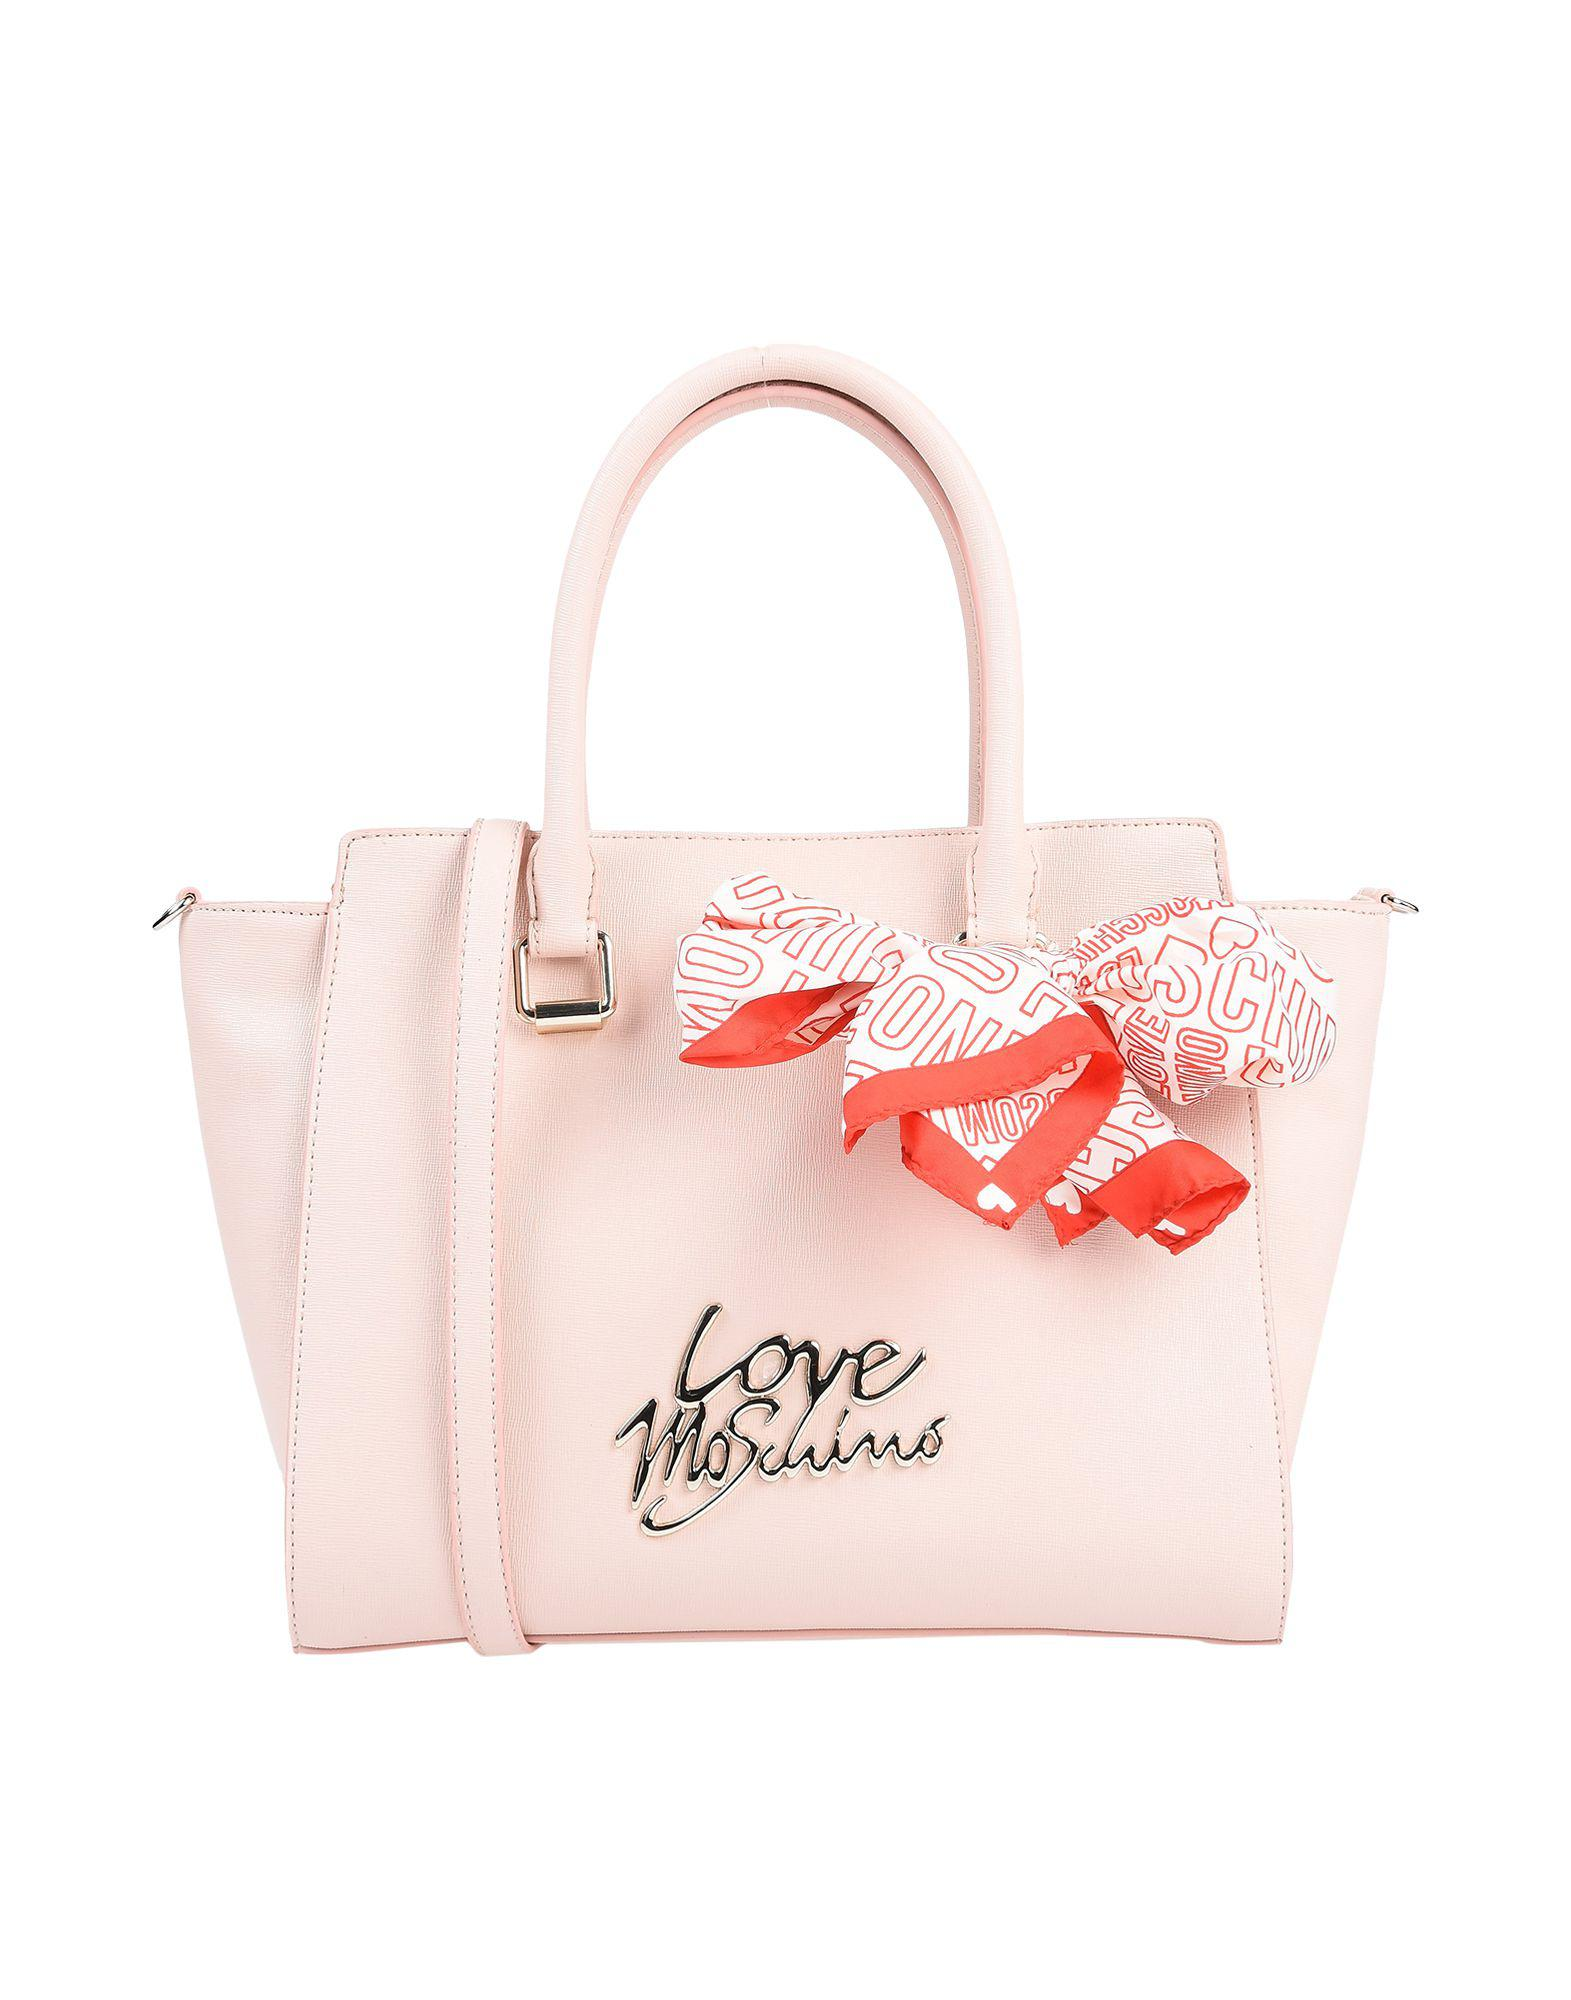 Love Sac Moschino Main En Lyst À Coloris Rose jMGqUzLVpS